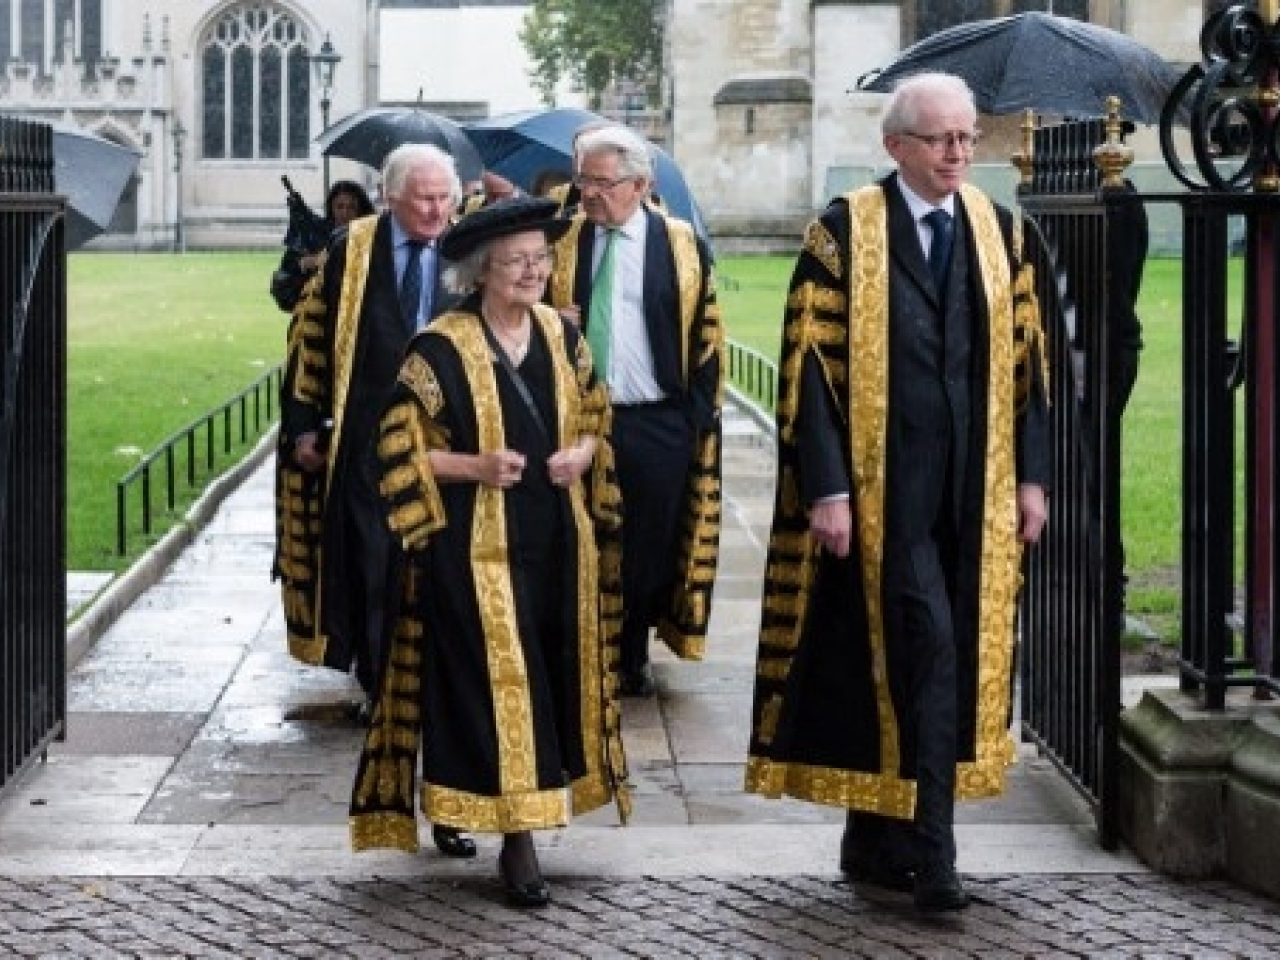 Lady Hale's term as an overseas judge on the CFA will end in July, and she reportedly told an online conference: 'I don't wish to be reappointed'. File photo: AFP